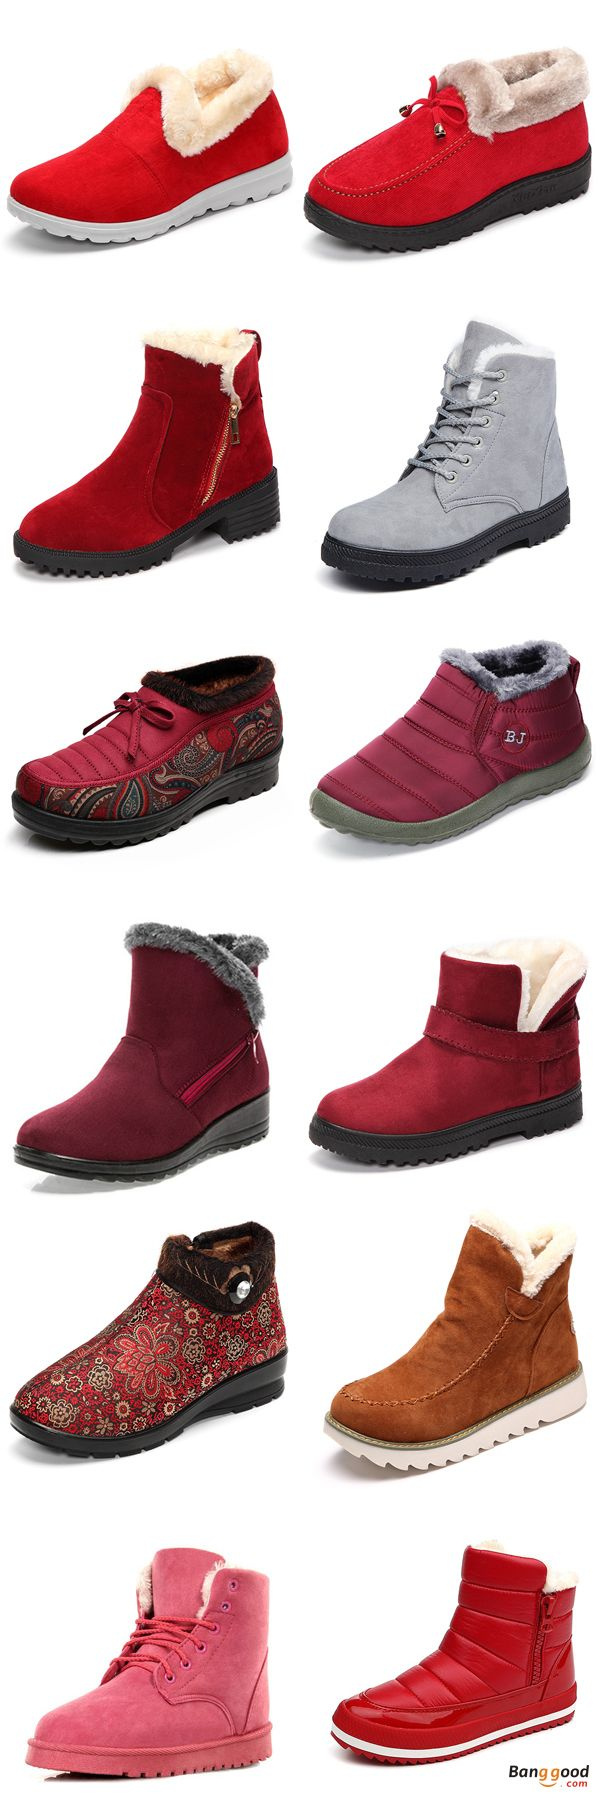 Boots For You. Fashion in this winter! Choose your style! https://twitter.com/cgsmomgogn/status/903783237117456388